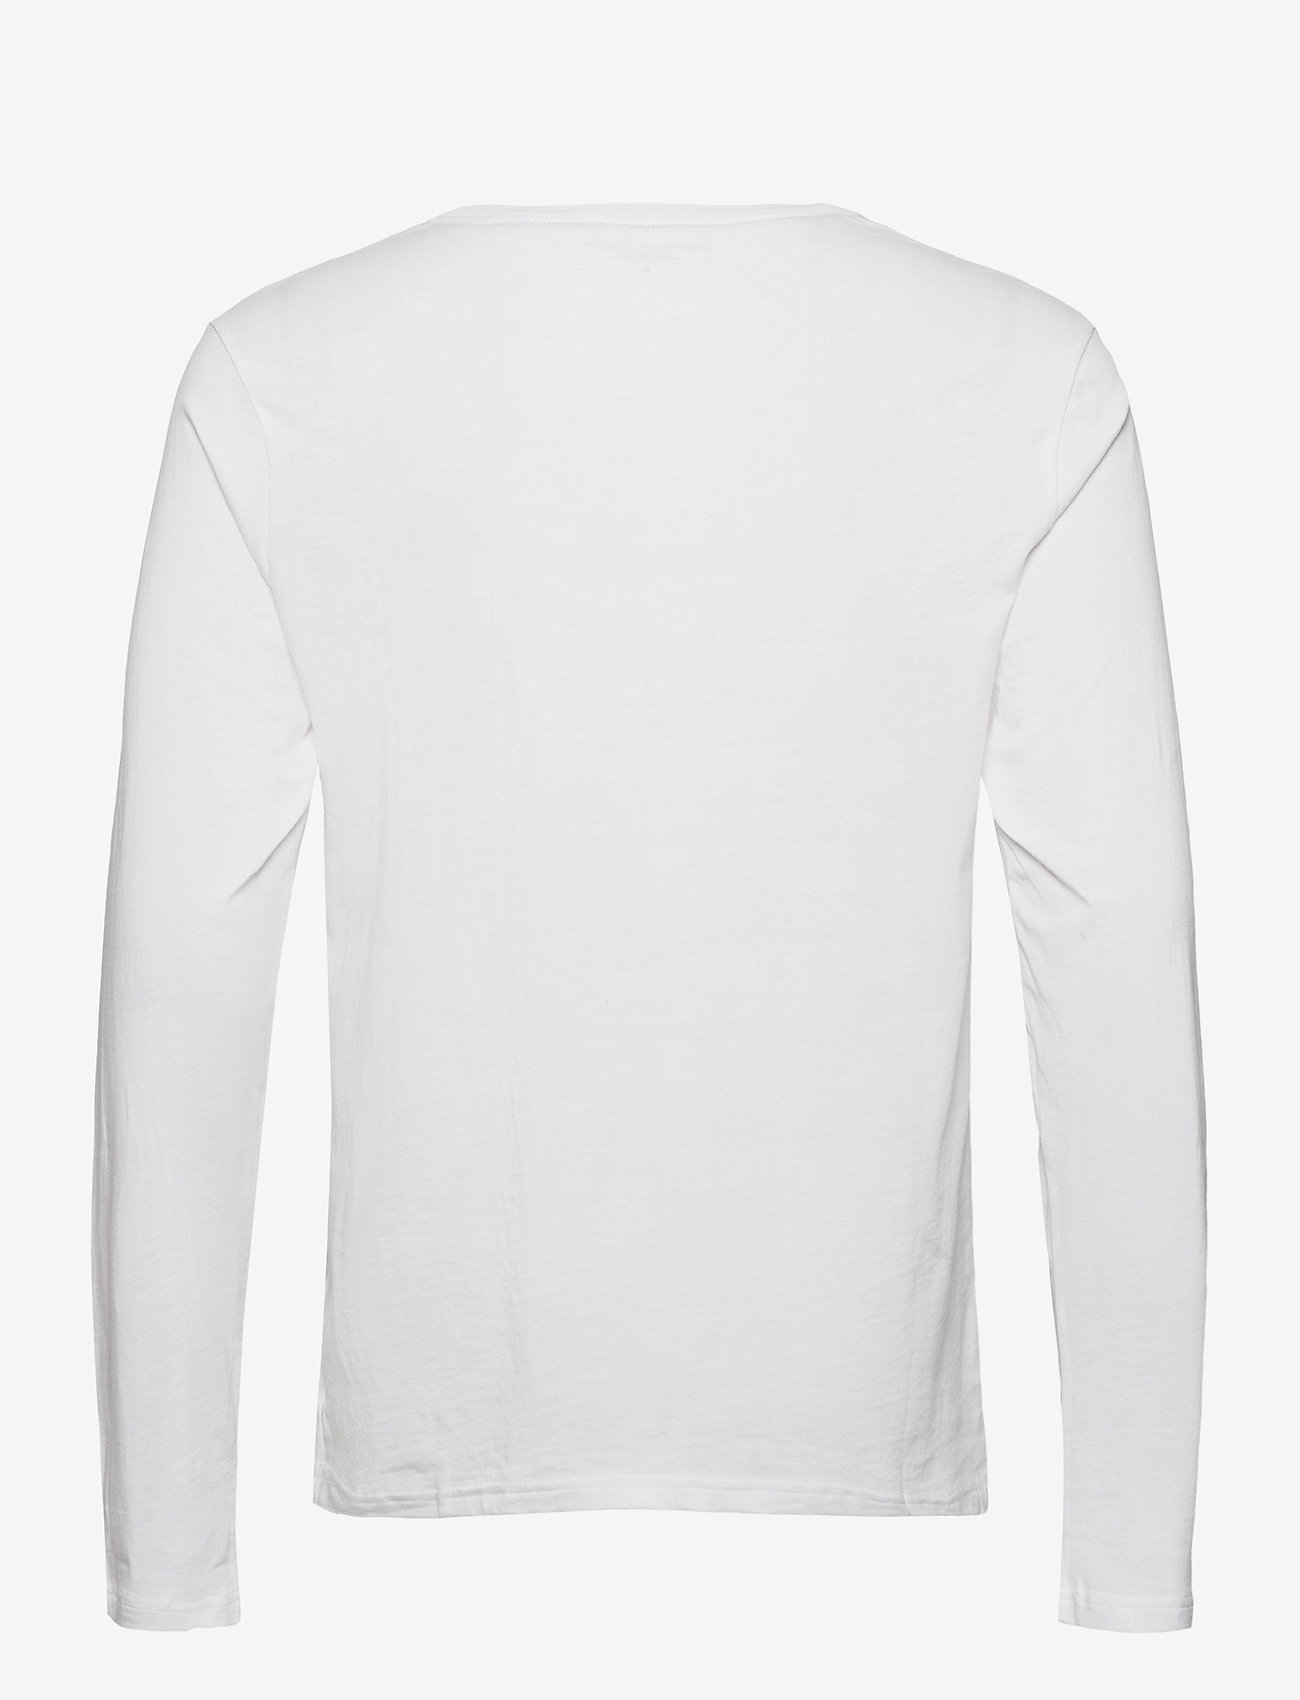 Tommy Hilfiger - CN LS TEE LOGO - long-sleeved t-shirts - white - 1